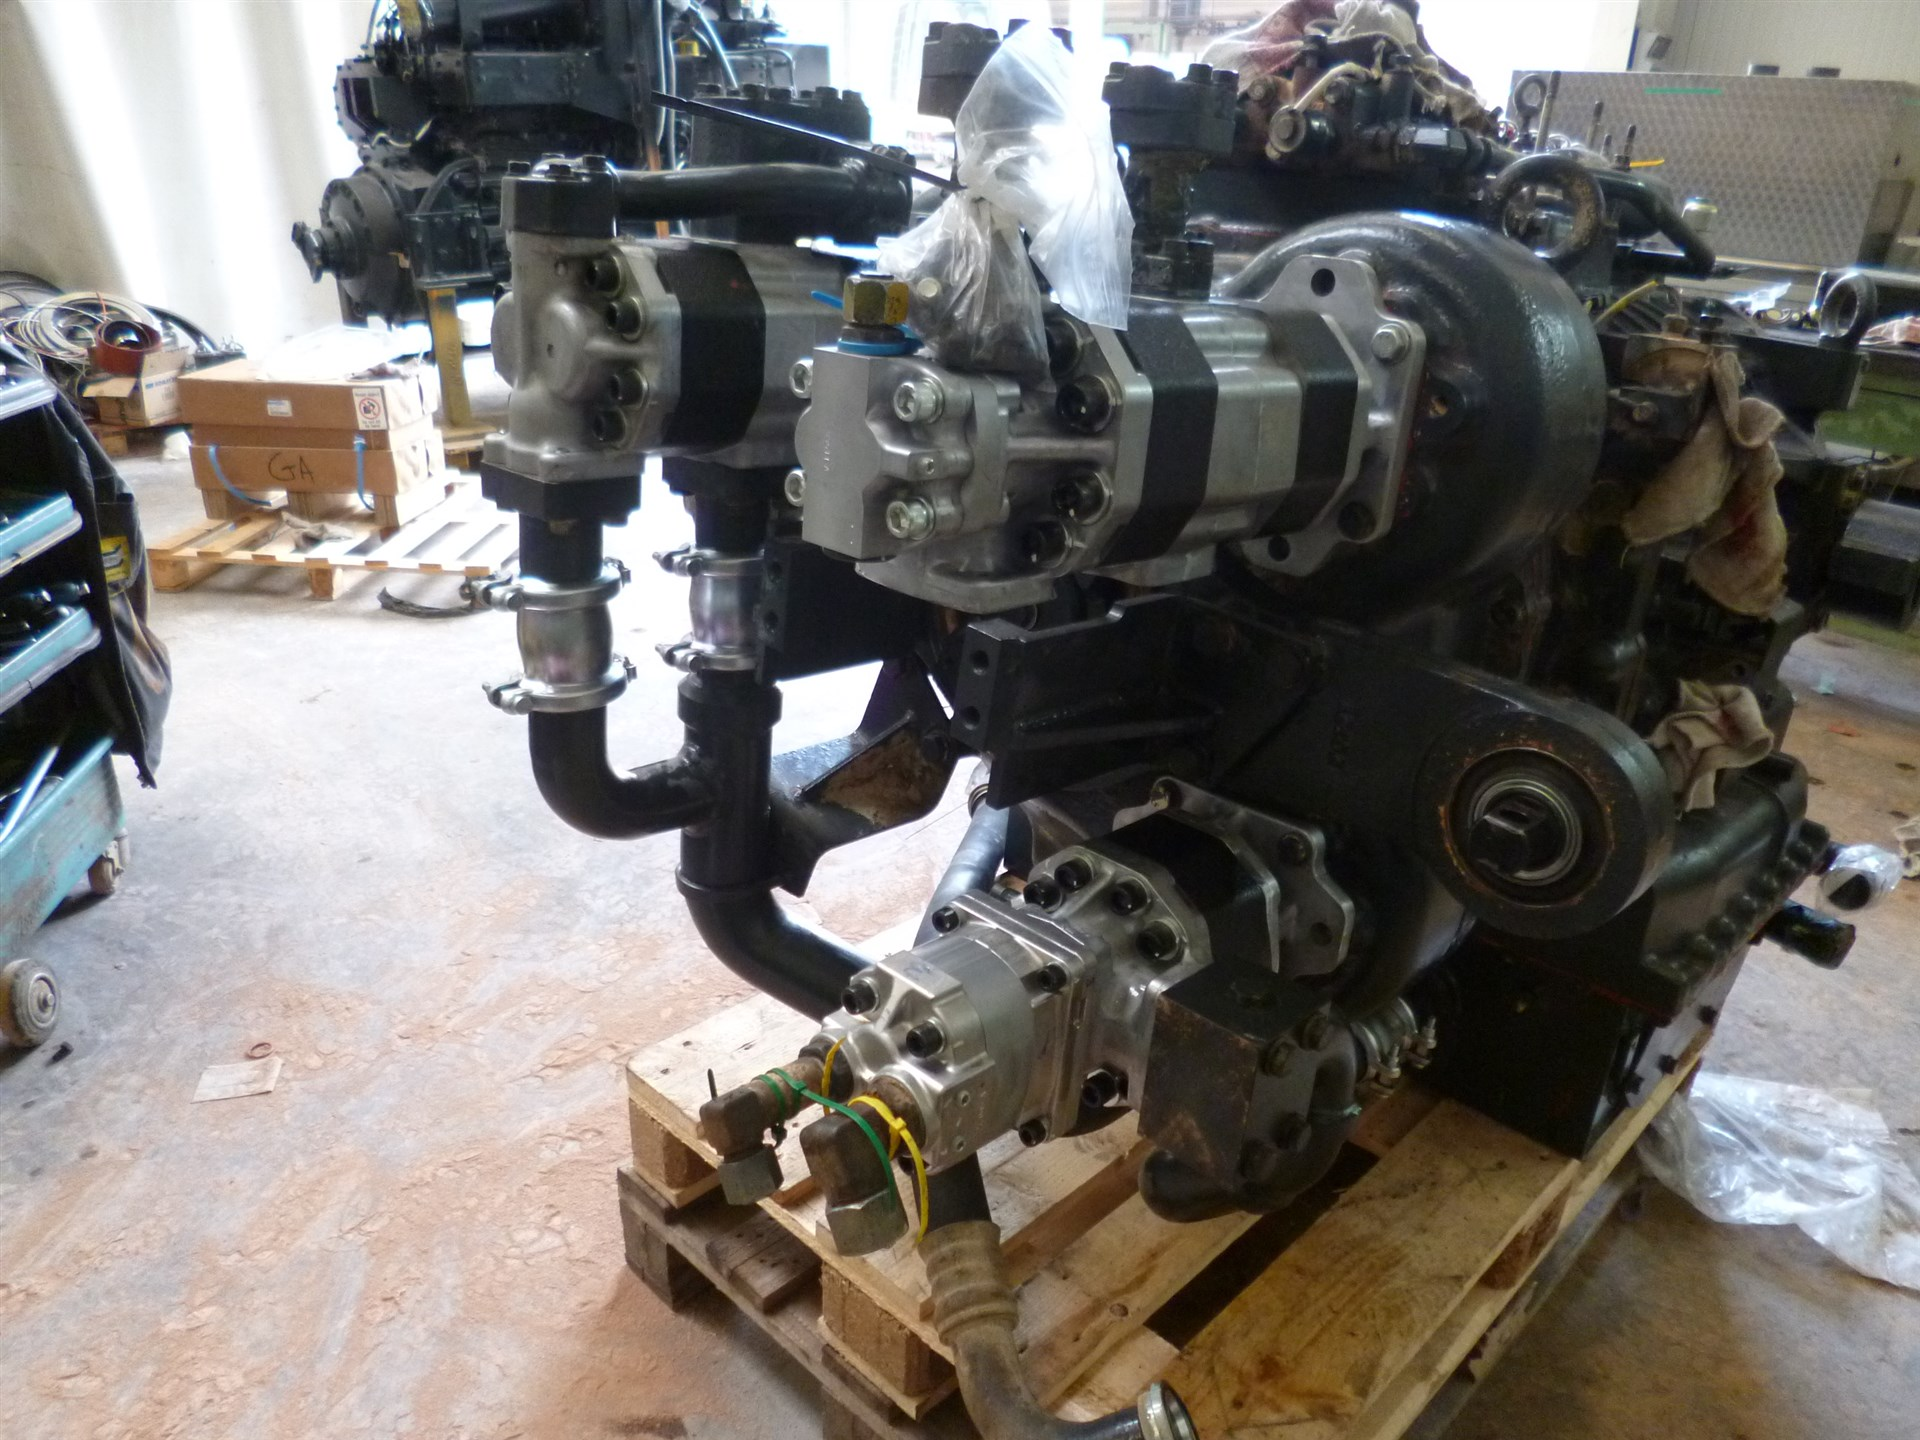 Reconditioning of the gear box and the hydraulic pumps